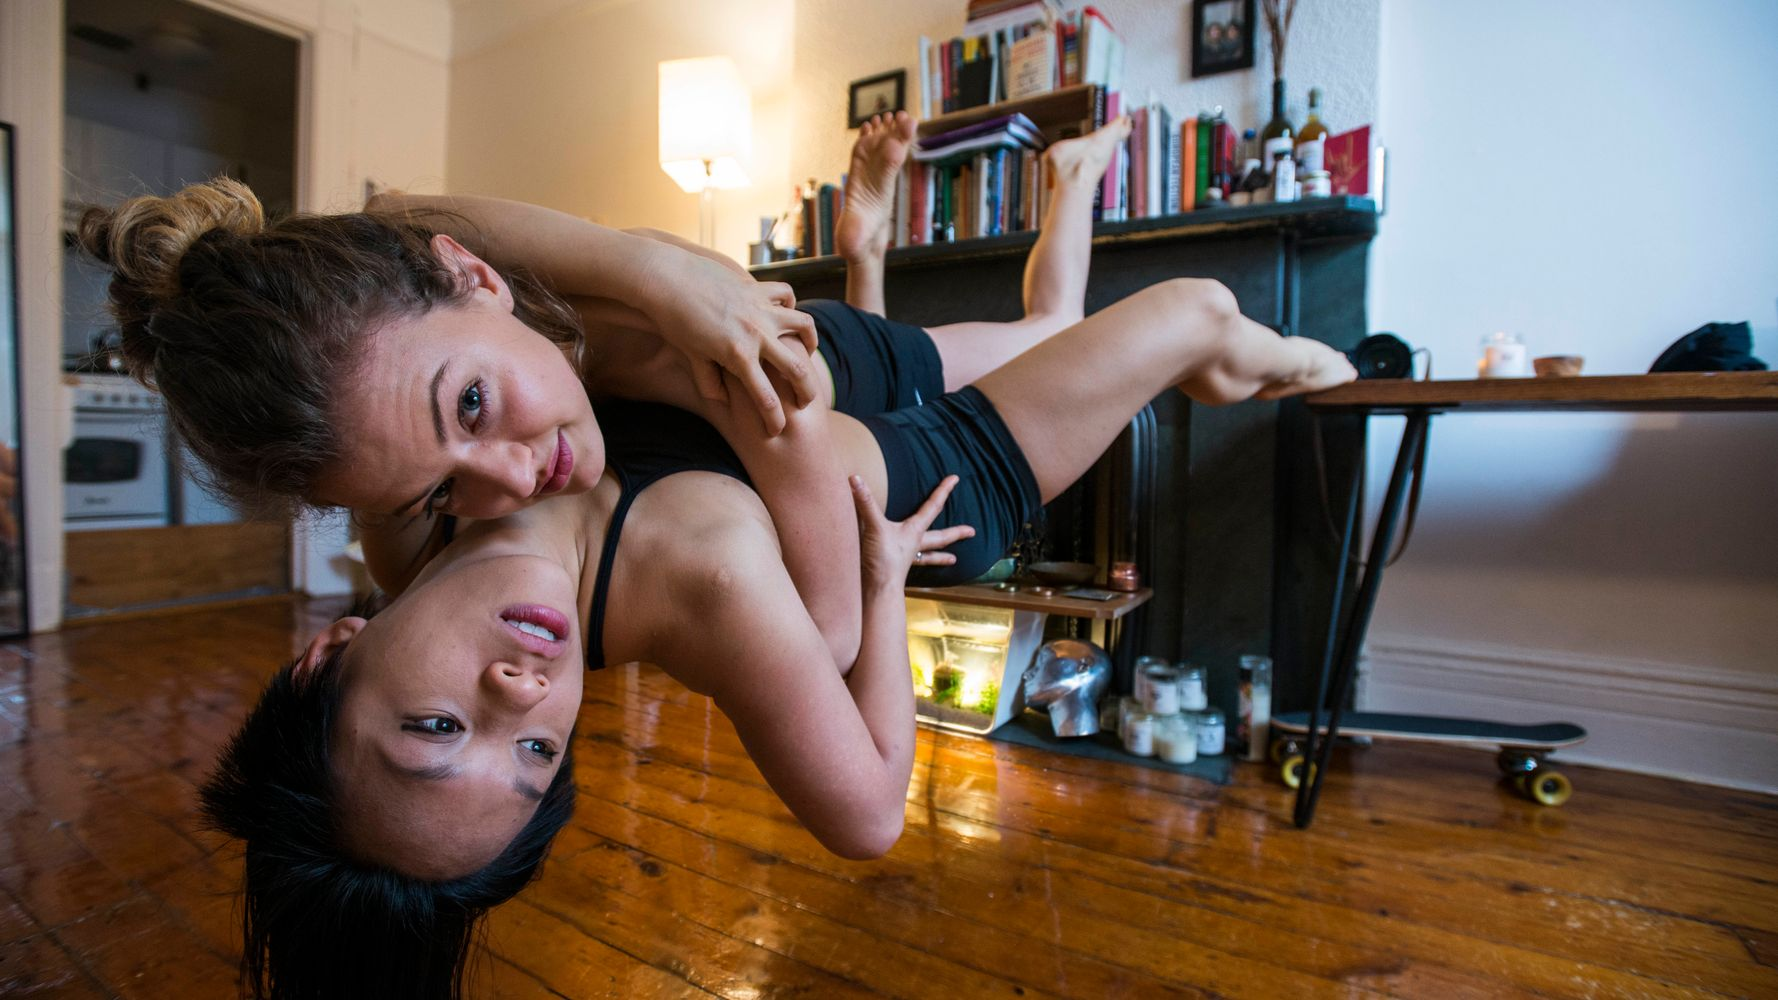 Love Is Lifting These Queer Couples Higher In Incredible Trick Photo Series